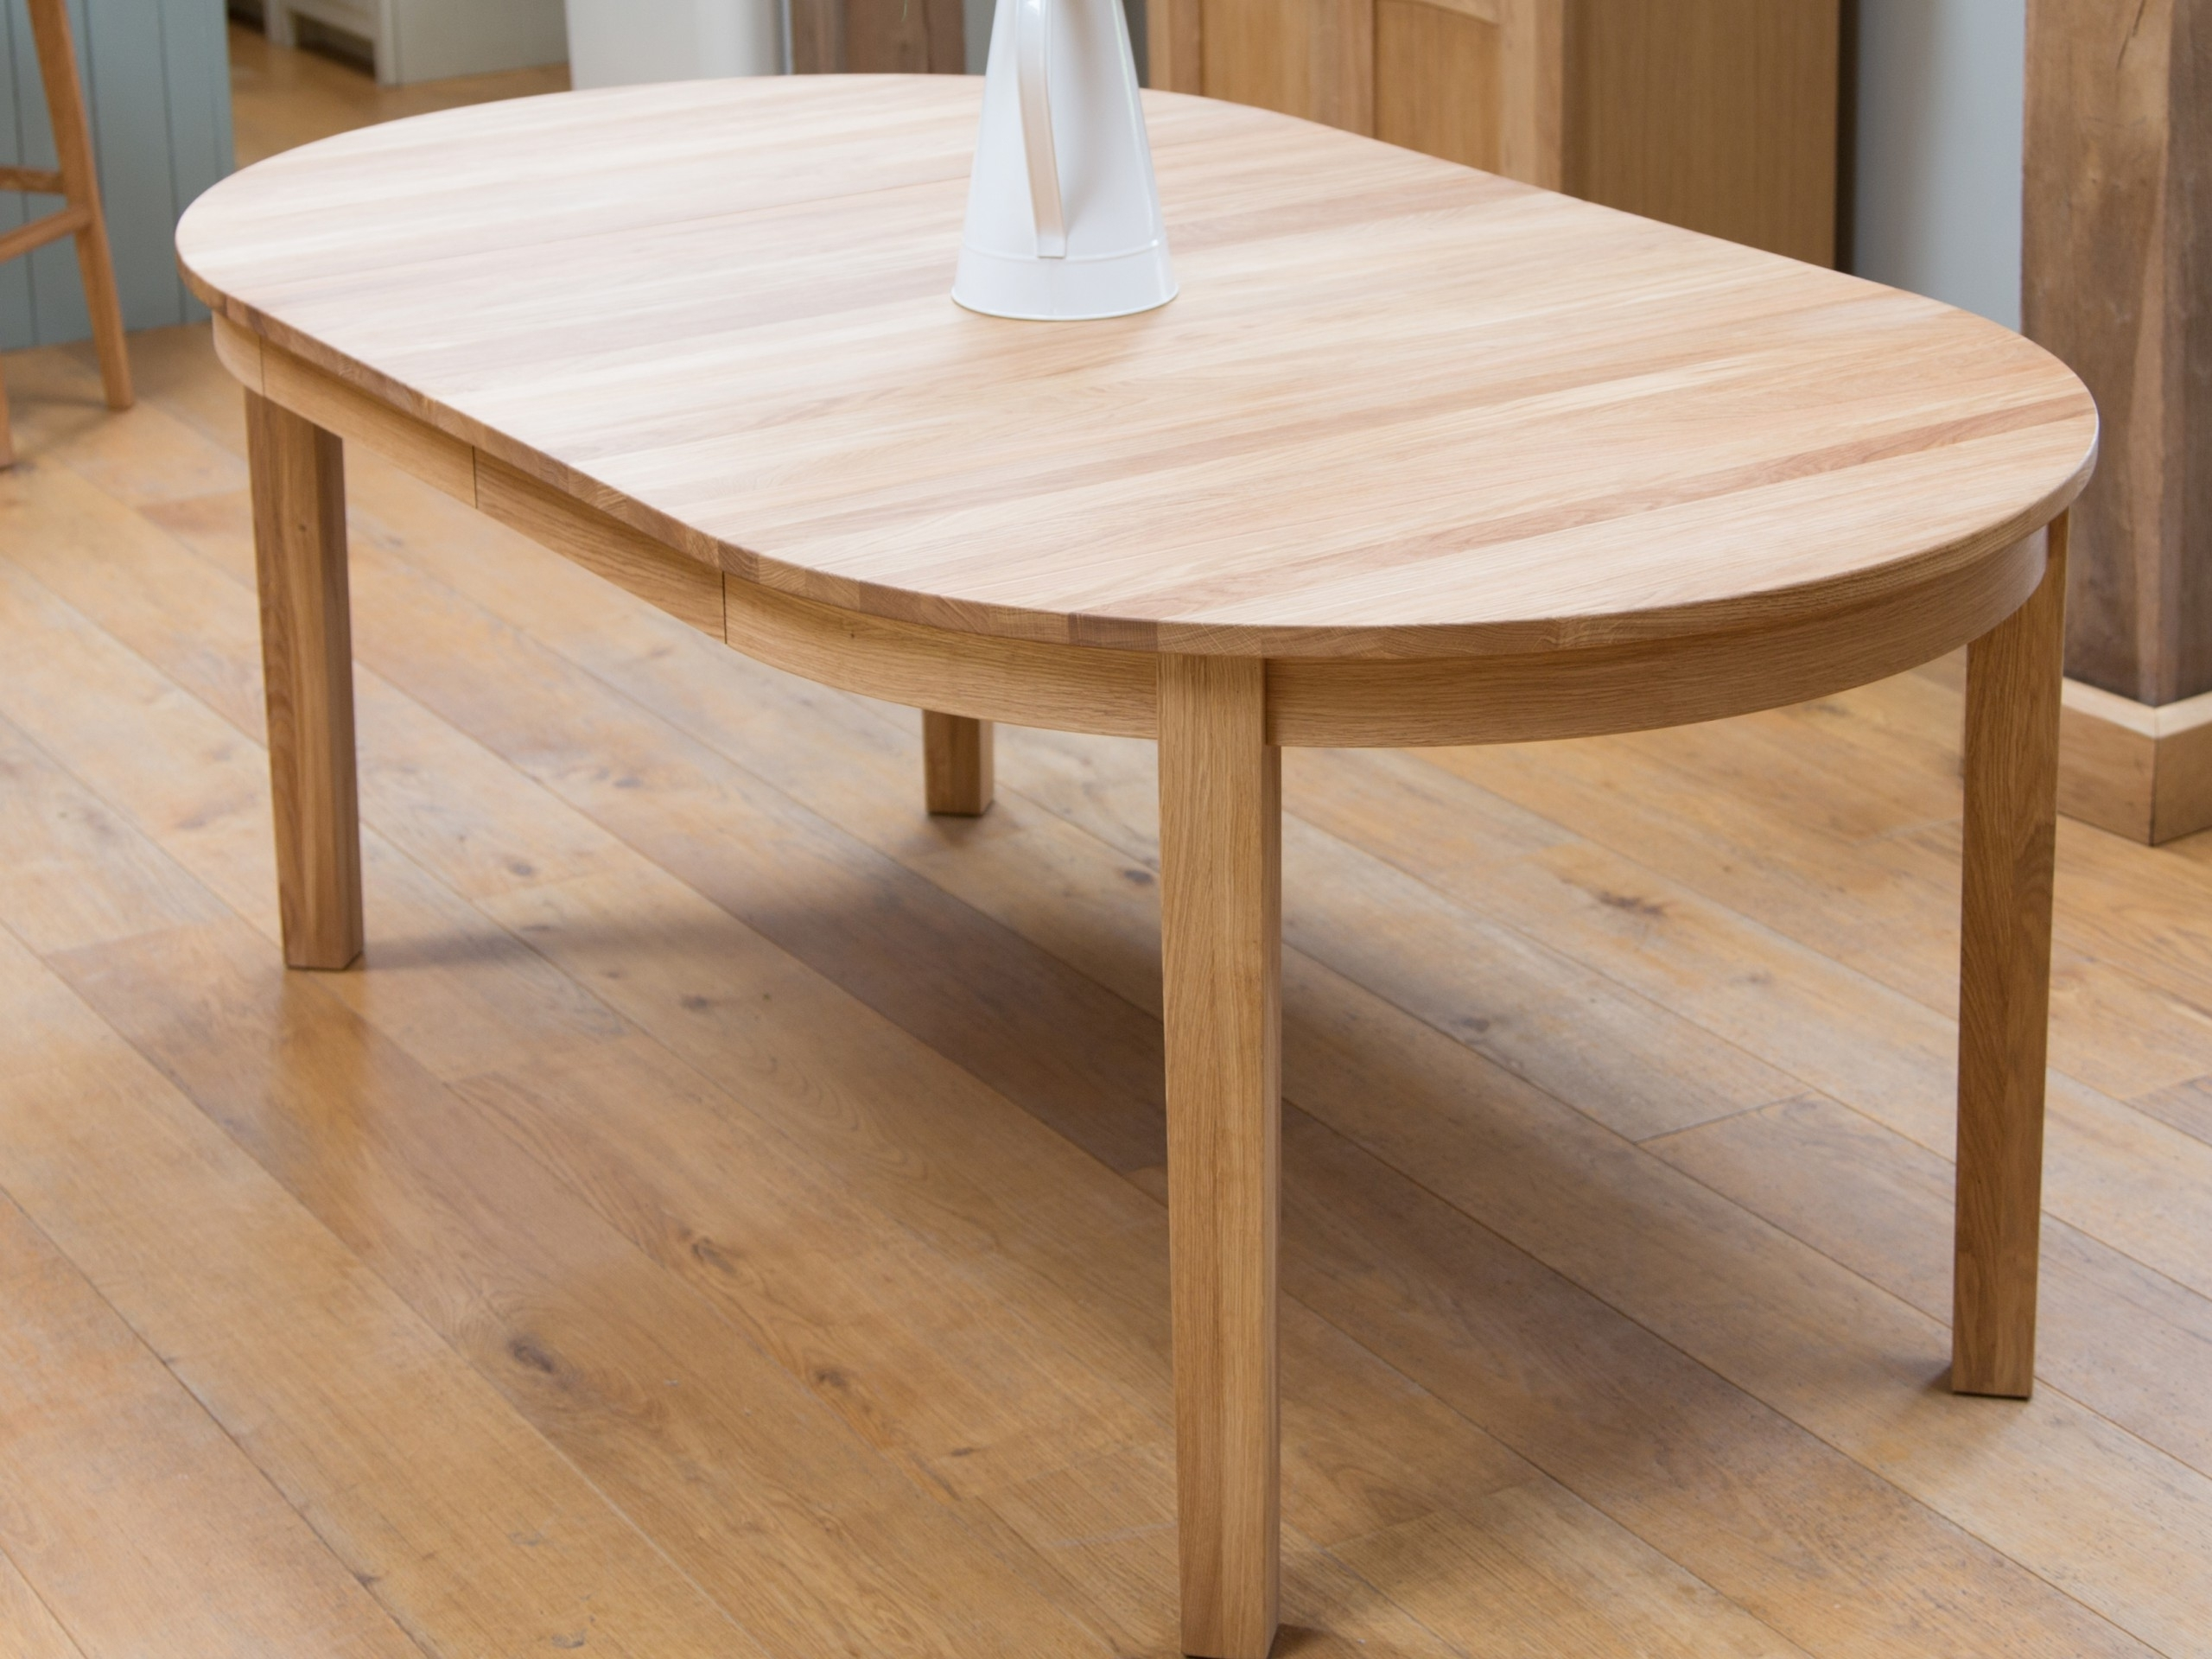 Round Extendable Dining Table Modern – Round Extendable Dining Table Regarding Recent Extendable Round Dining Tables (View 16 of 25)